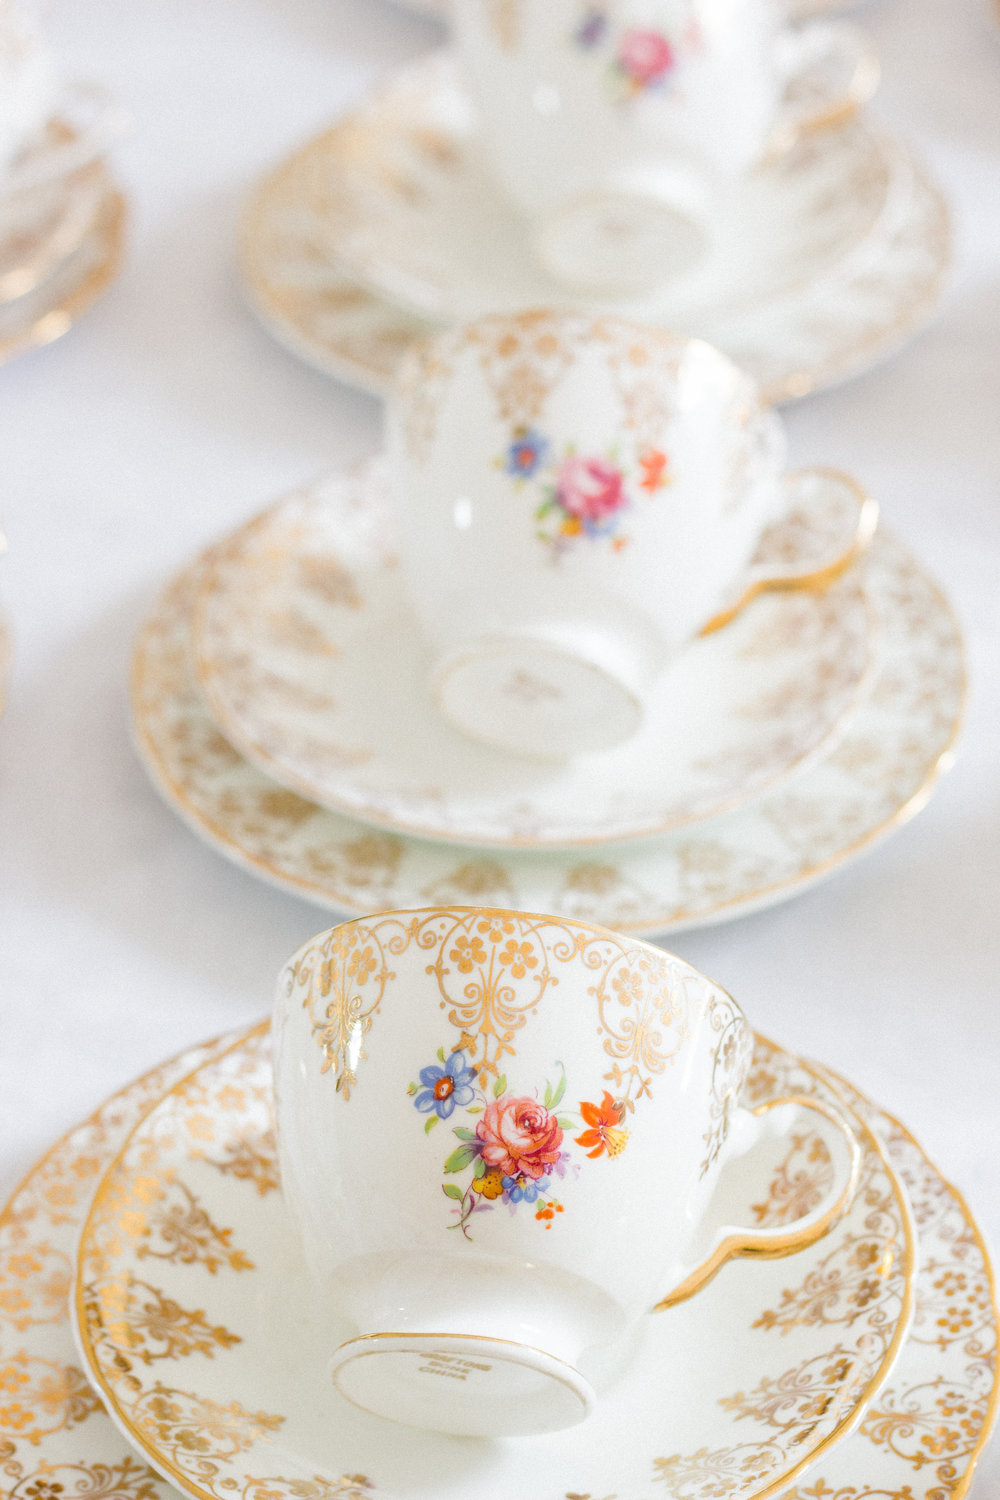 Vintage Amy Wedding Styling and Hiring-Vintage Tea Cups for Hire-Vintage Weddings and Events South East England